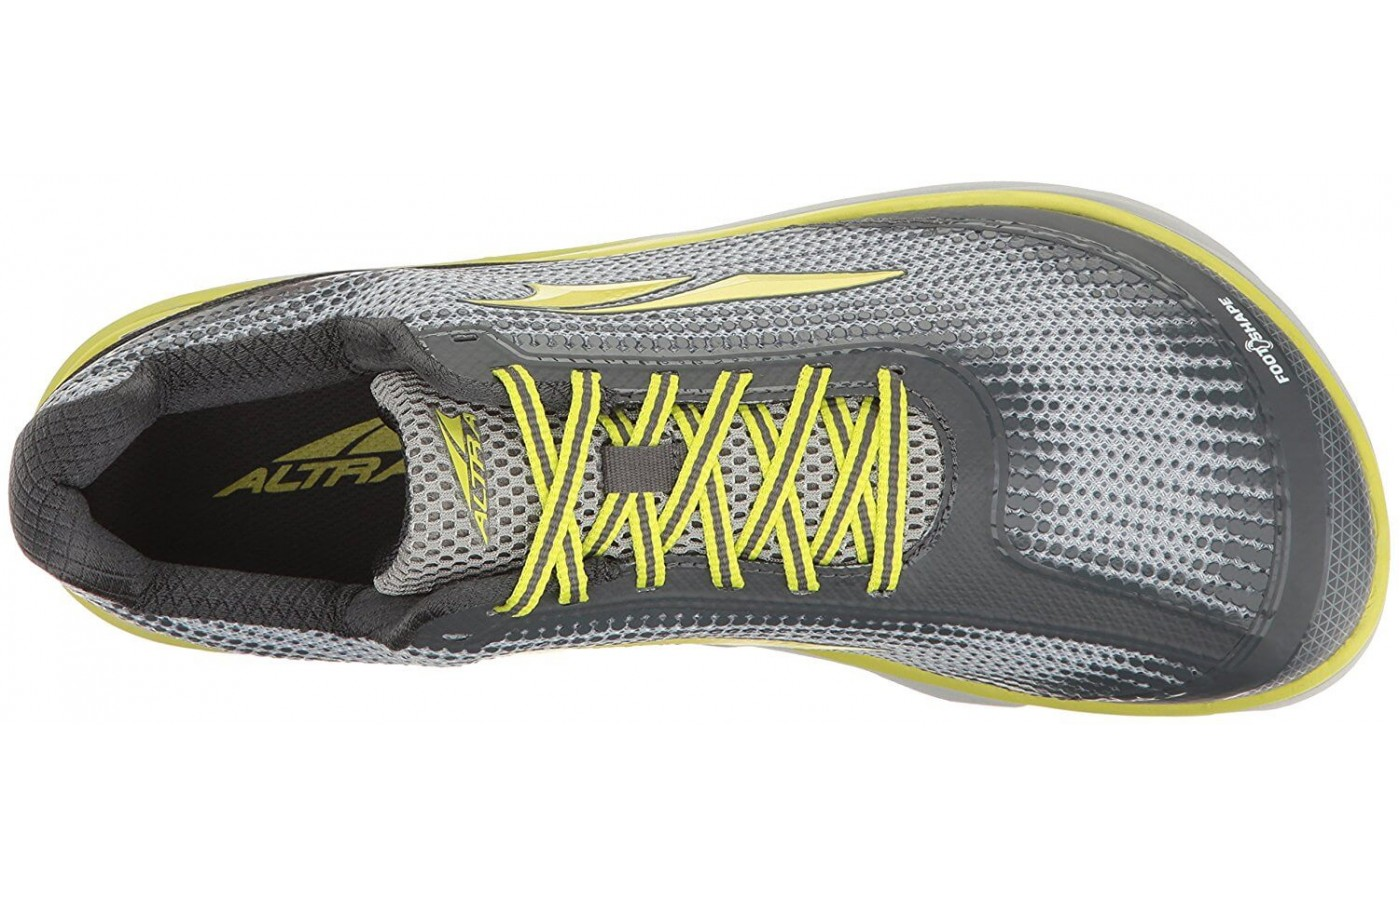 The Altra Torin 3.0 has a new quick-dry air mesh upper